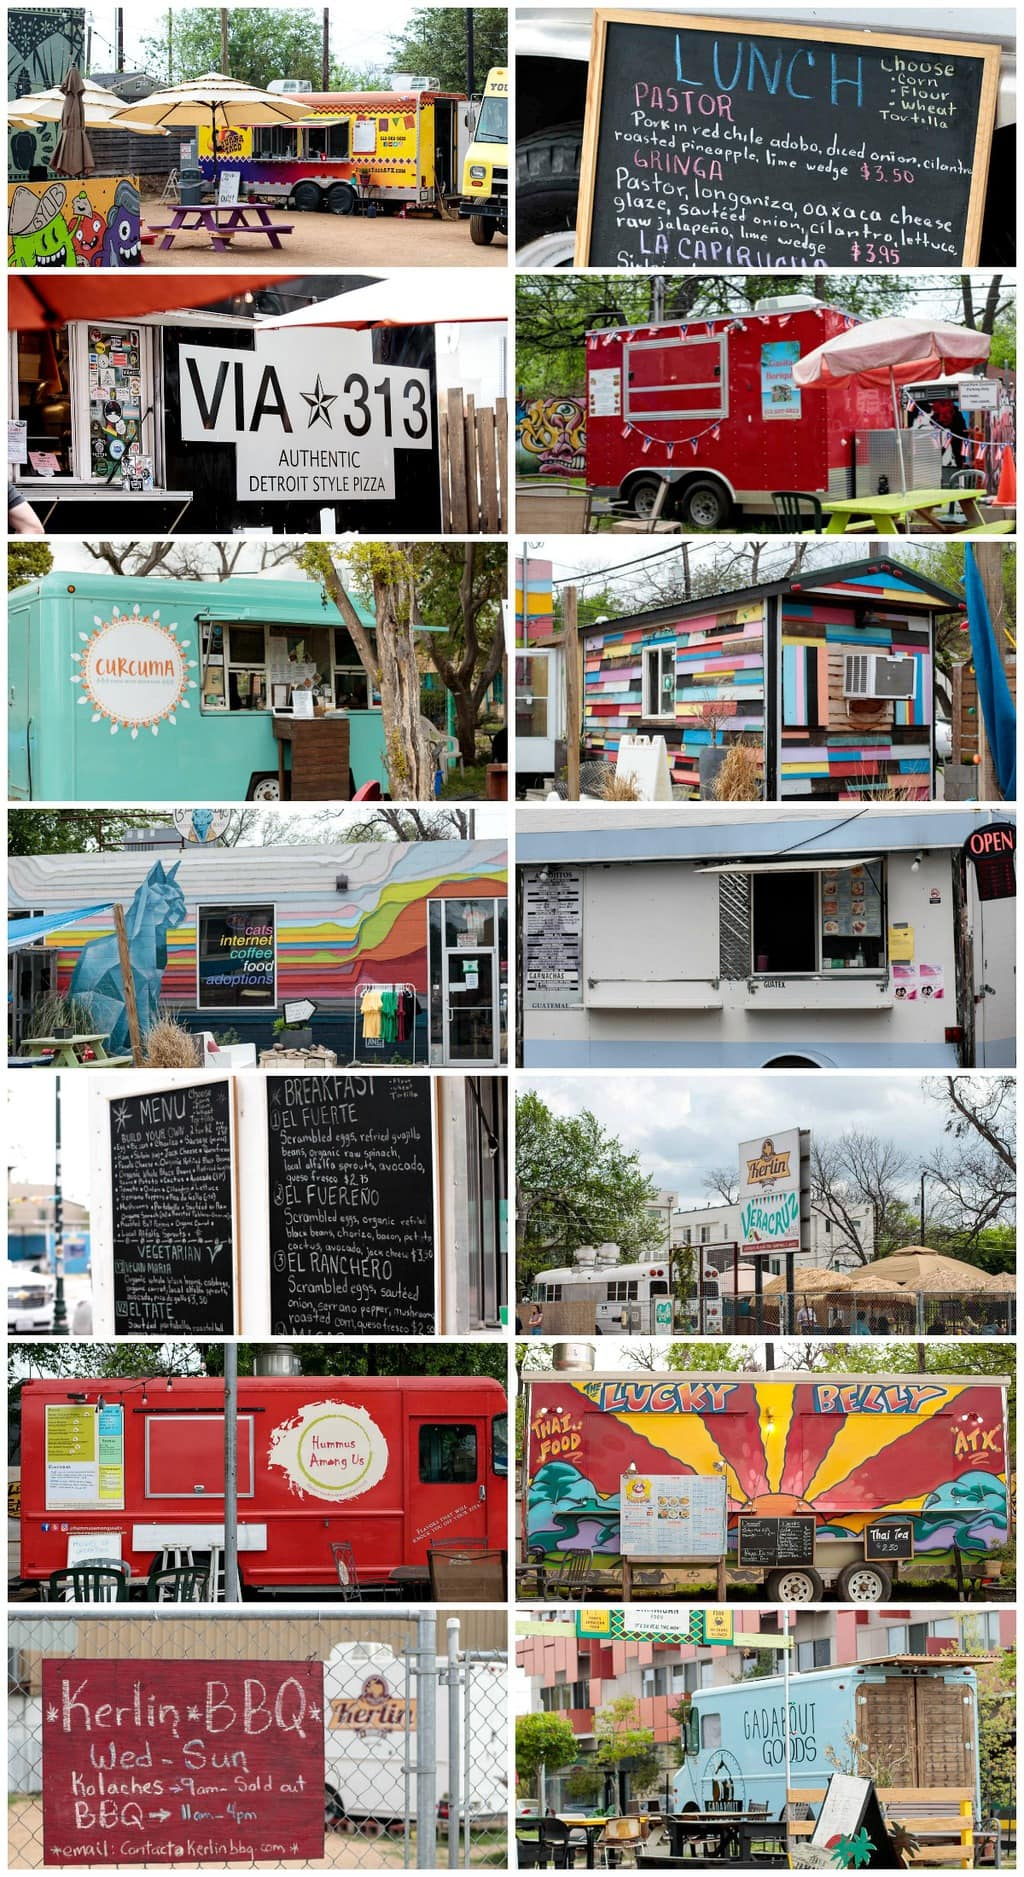 Collage photos of Austin, Texas food trucks from all over the city.